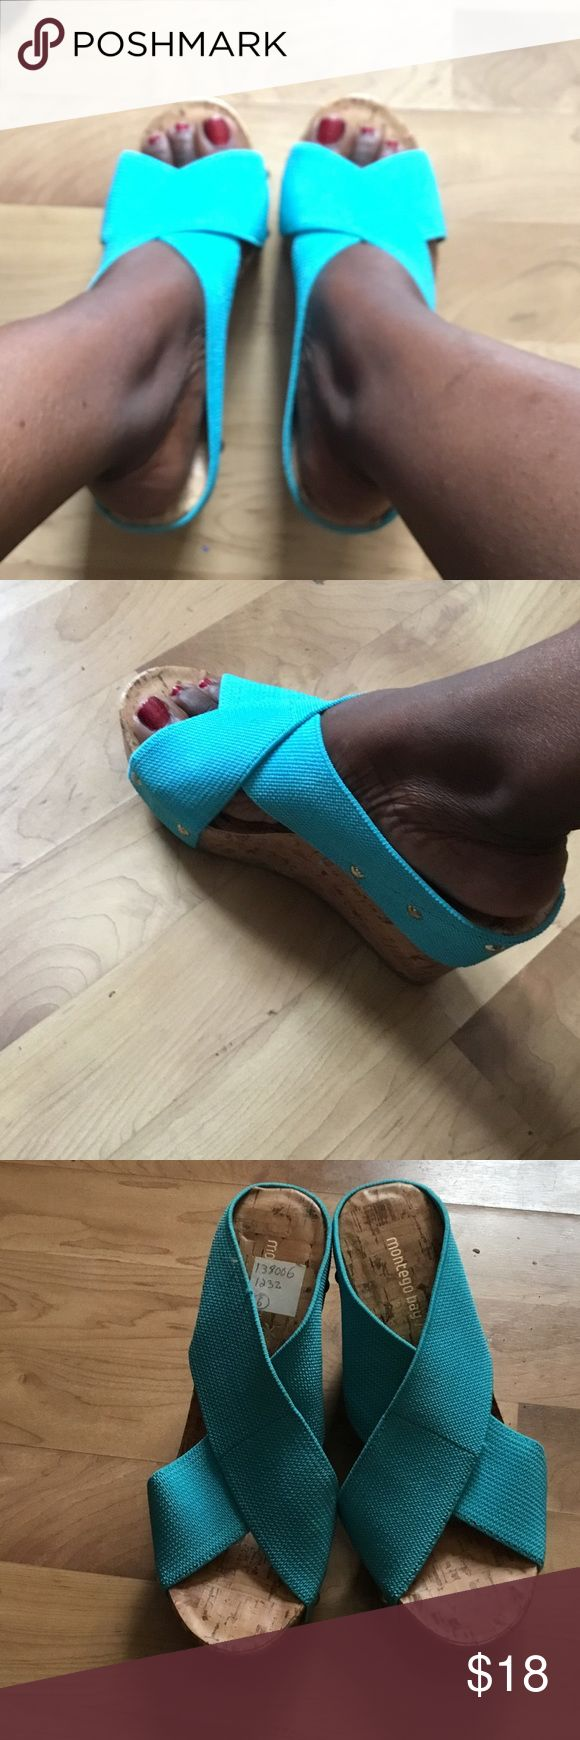 Turquoise wedges Great condition wedges Montego Bay Club Shoes Wedges